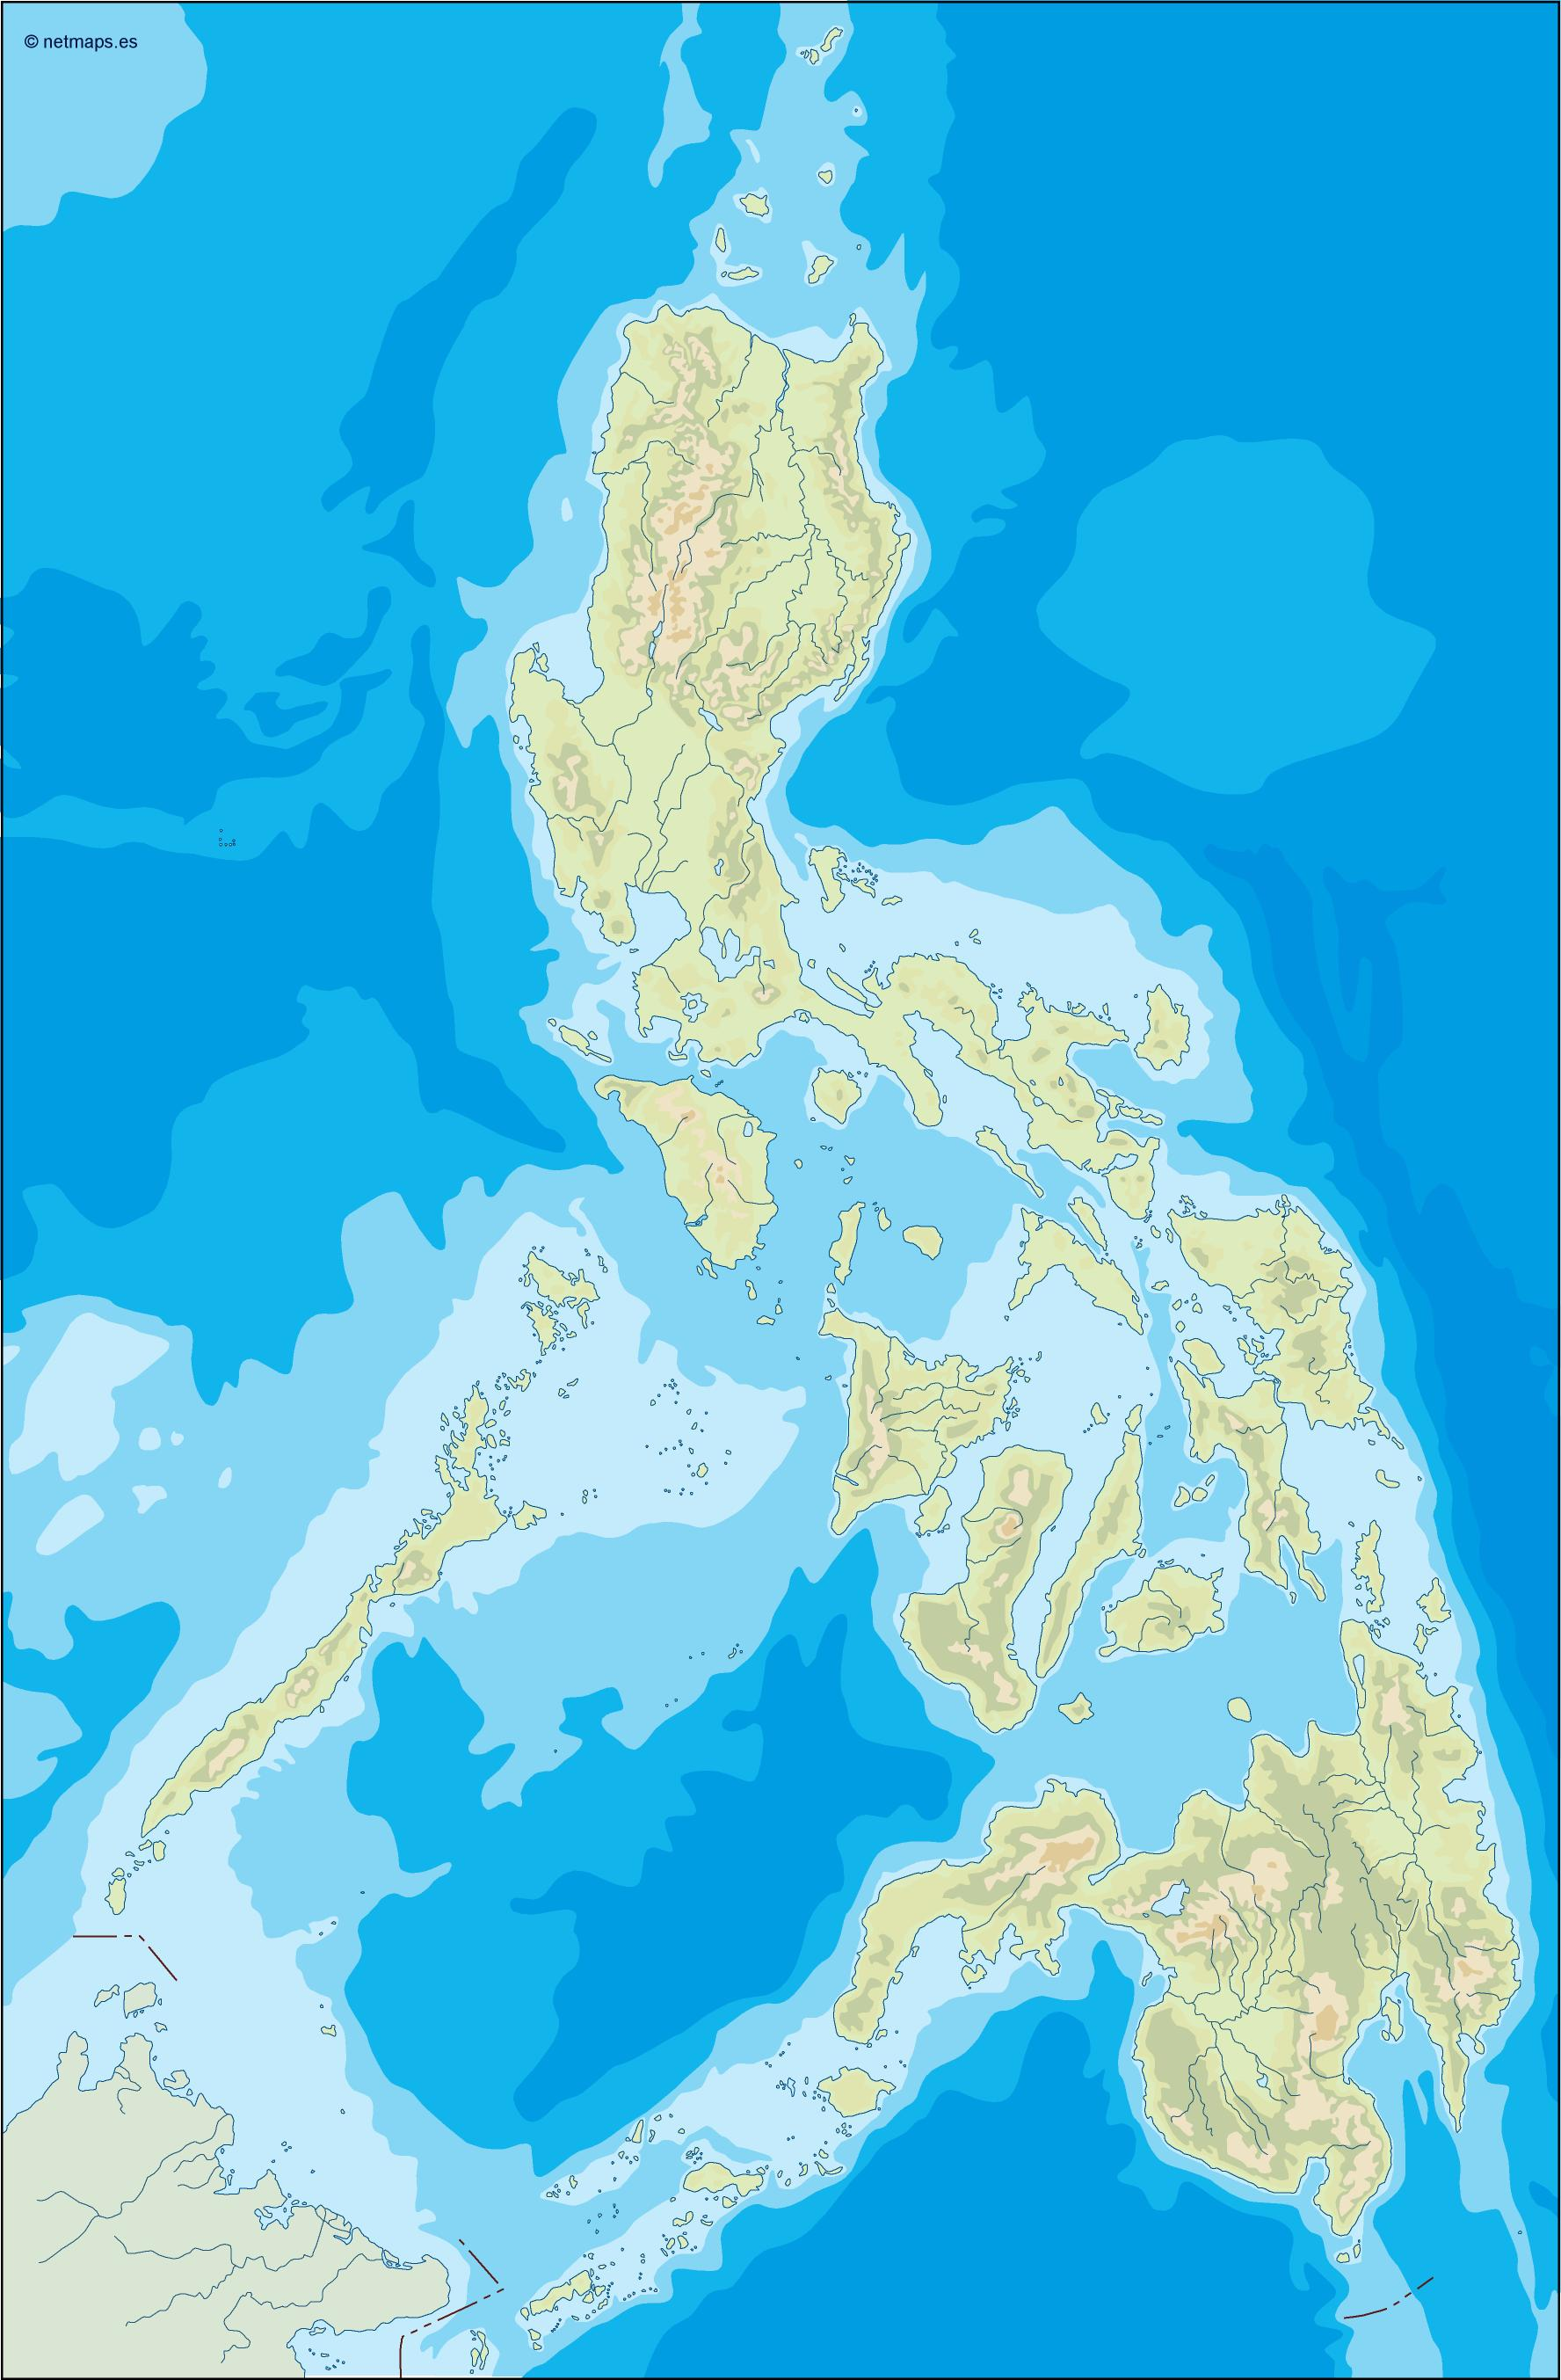 philippines illustrator map on map showing philippines, map of philippines in imperialism, map of philippines in asia, map of bohol island philippines, map of morocco and surrounding countries, map of philippines on world map,